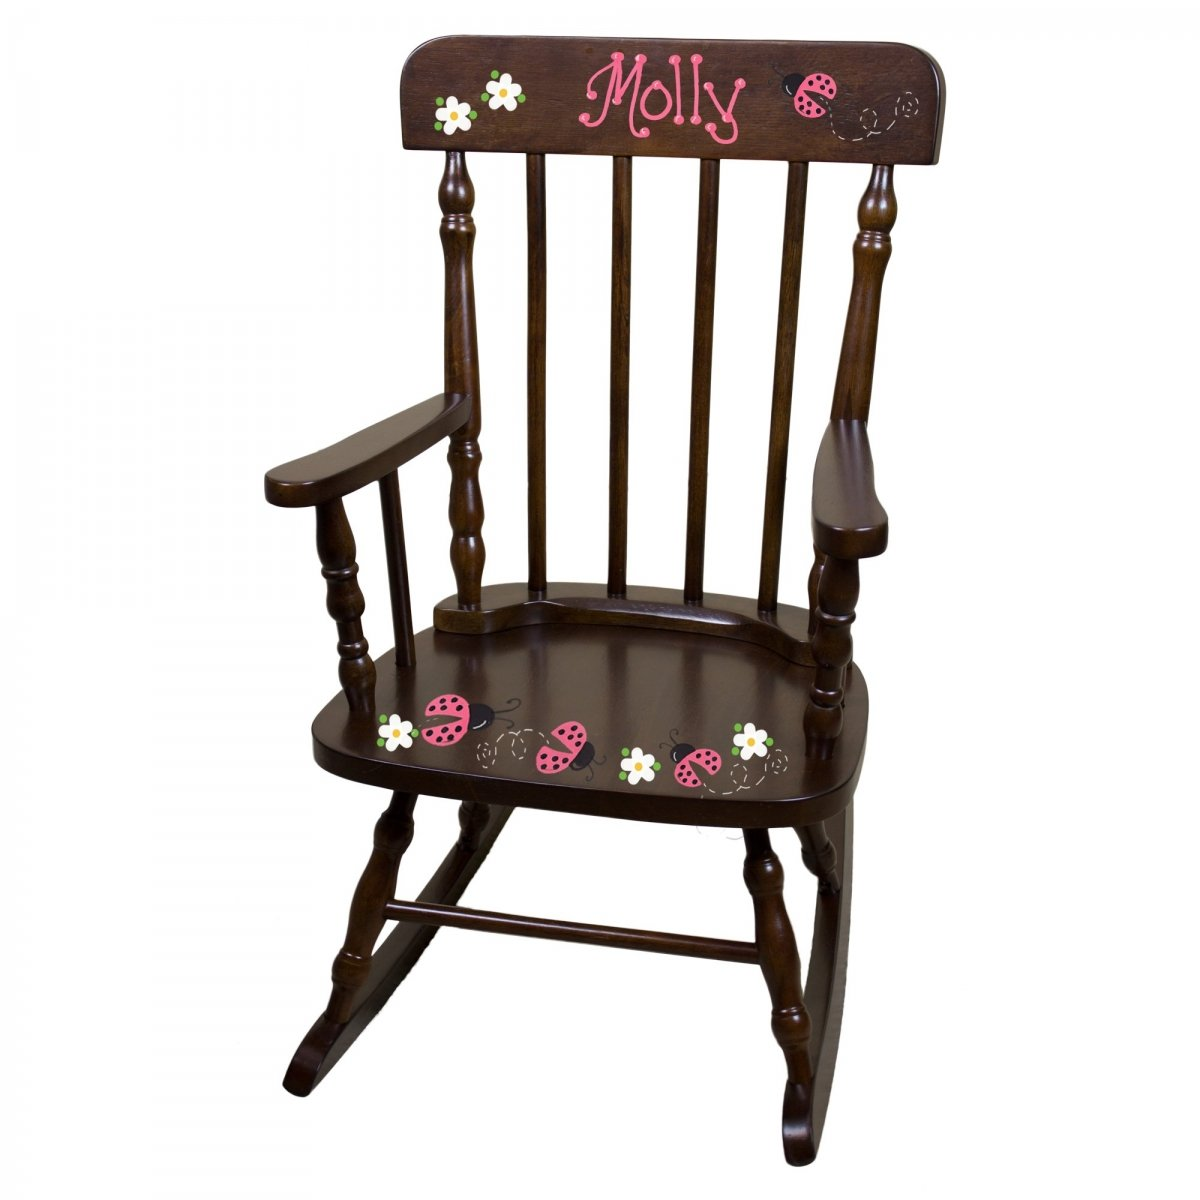 High Quality Hand Painted Personalized Childu0027s Rocking Chair | SimplyUniqueBabyGifts.com